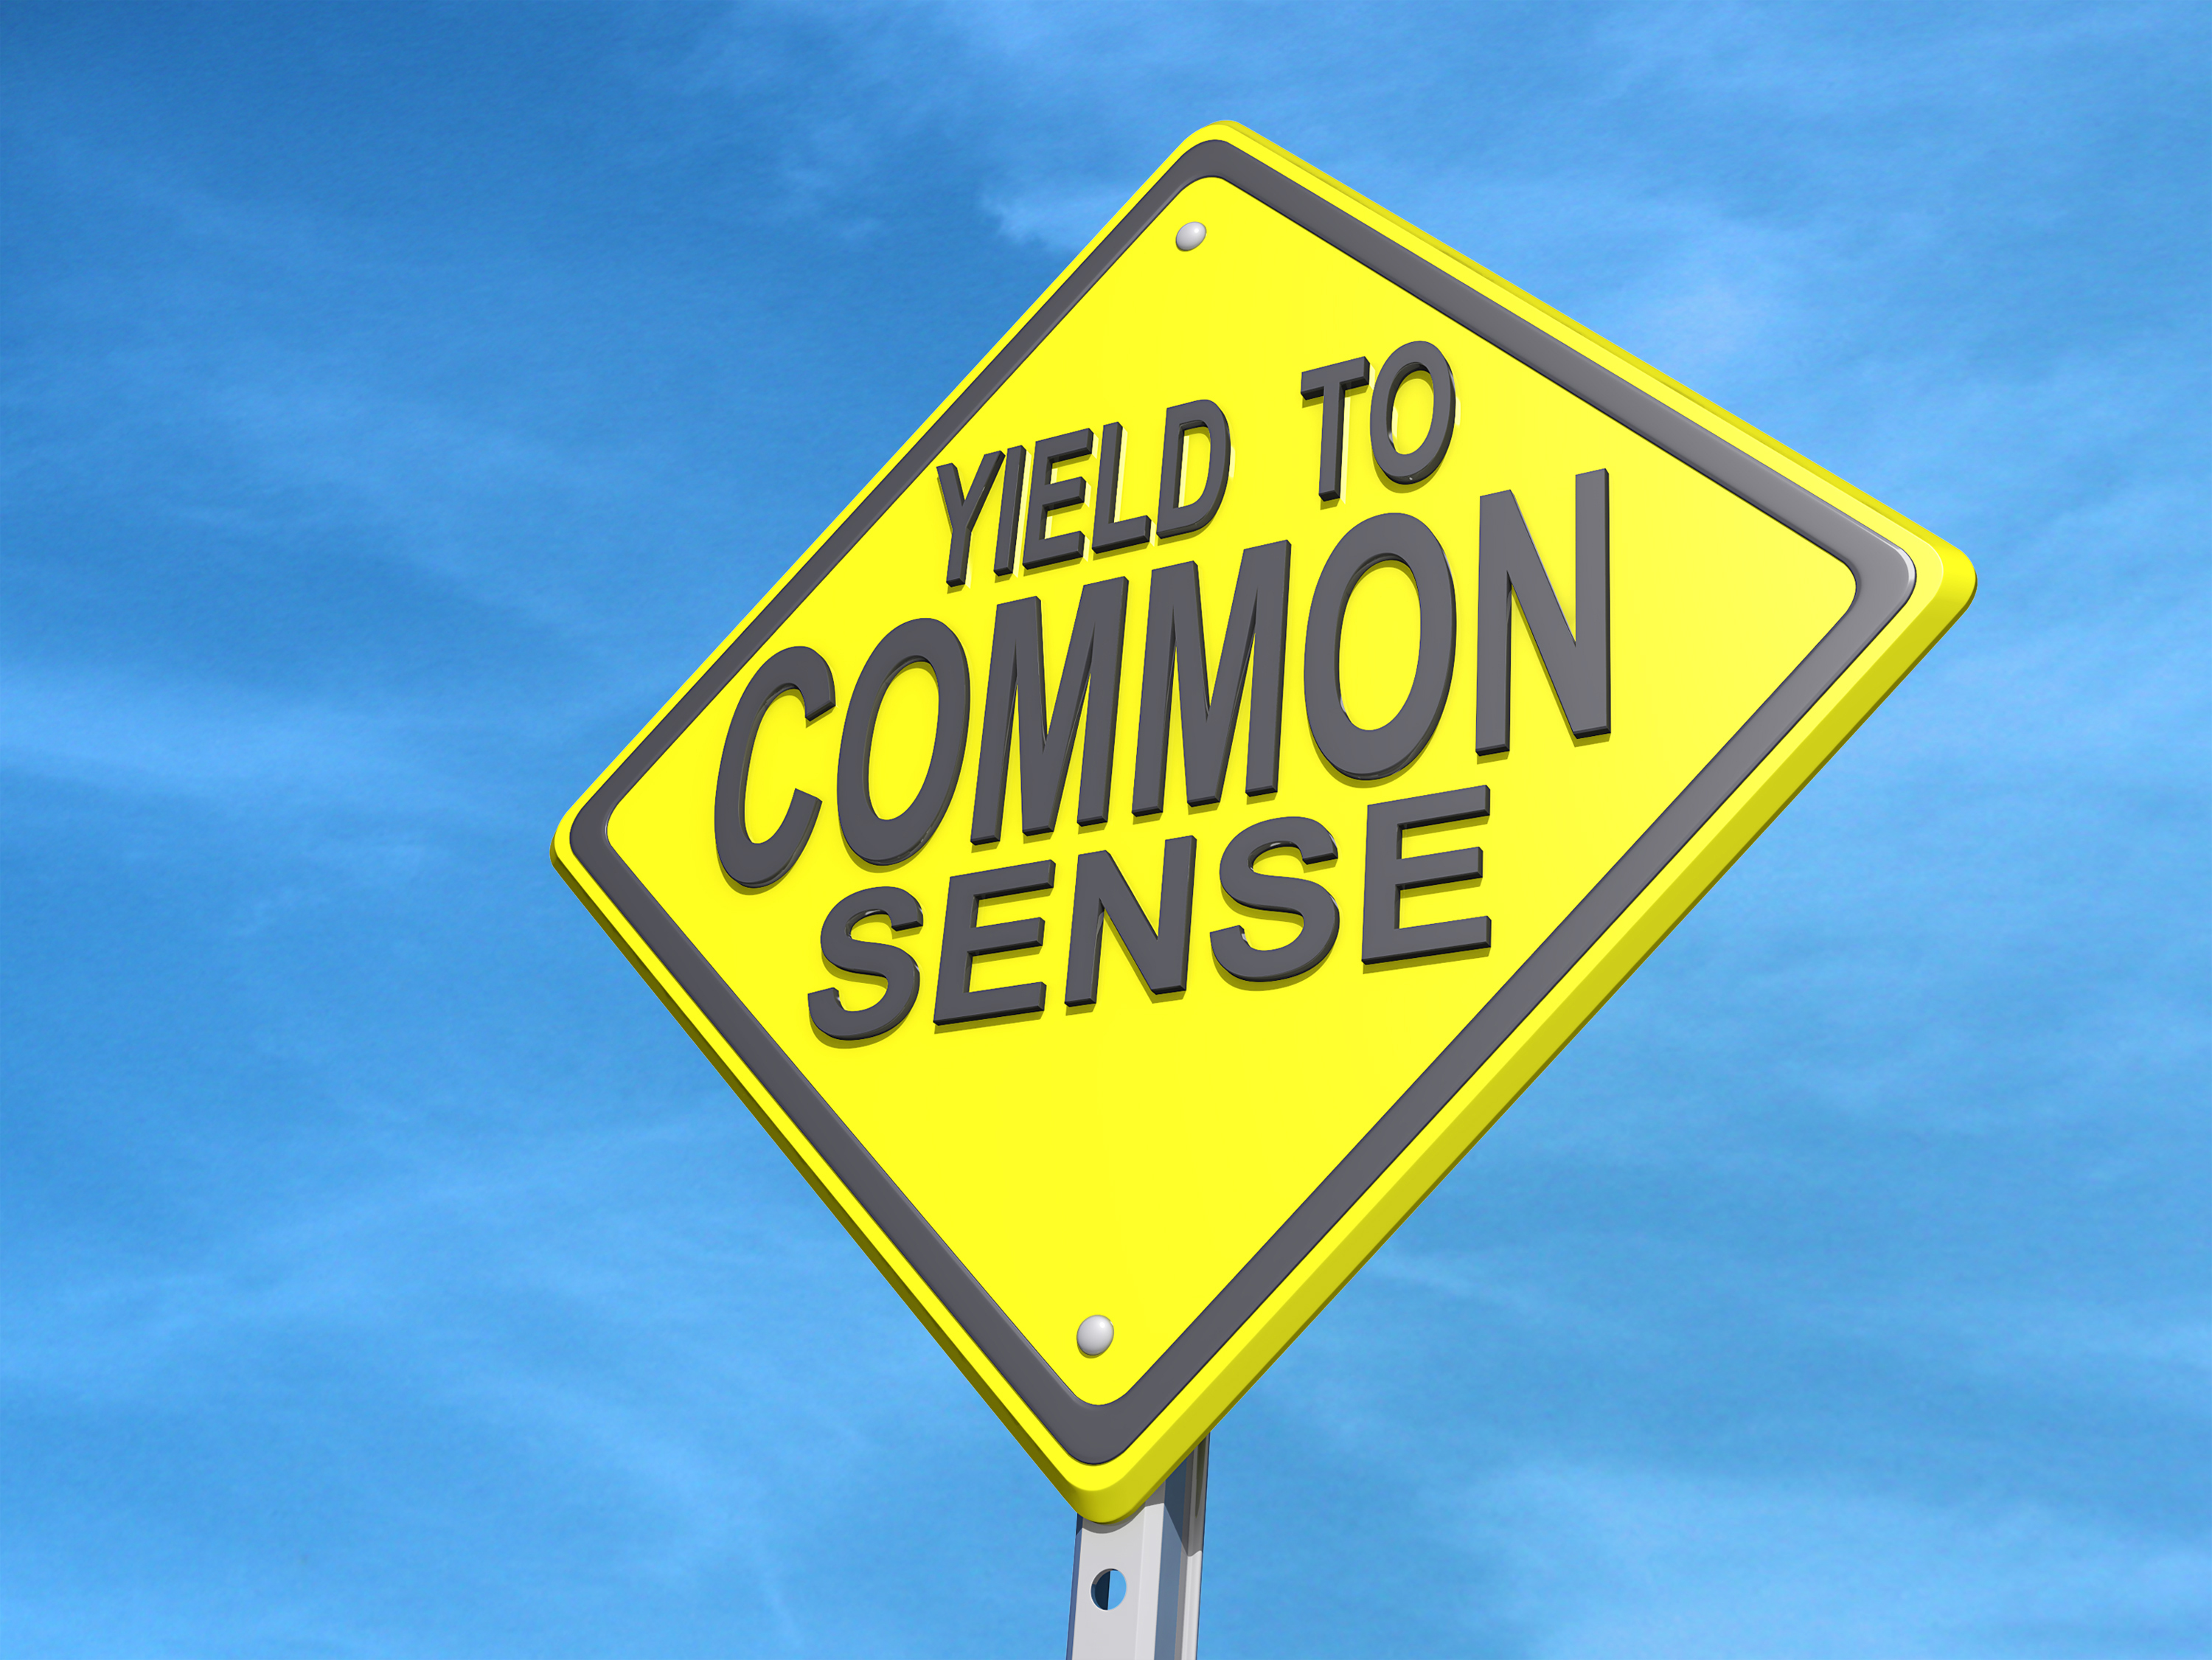 Common-Sense yield